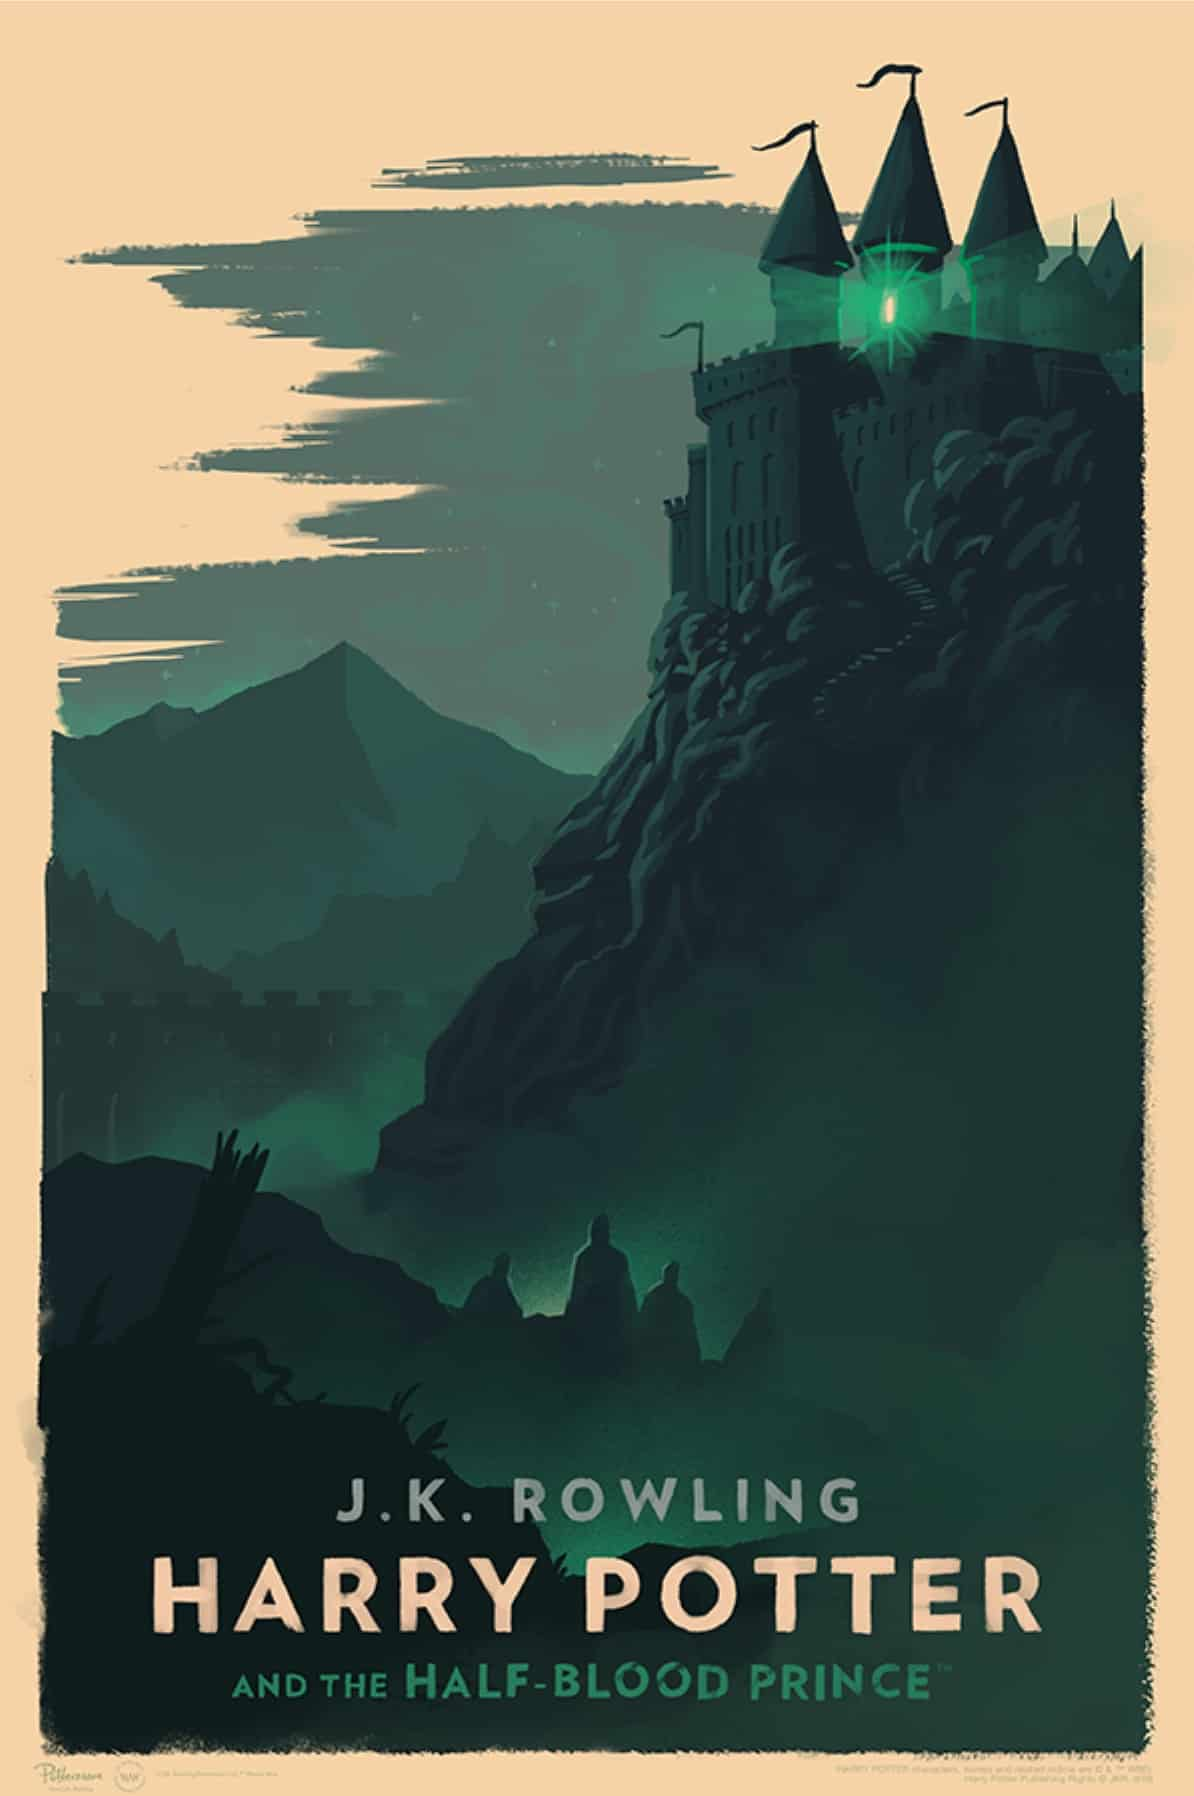 A portrait of Hogwarts castle, high on a hill, in green. A green light comes from a high window in the tower.